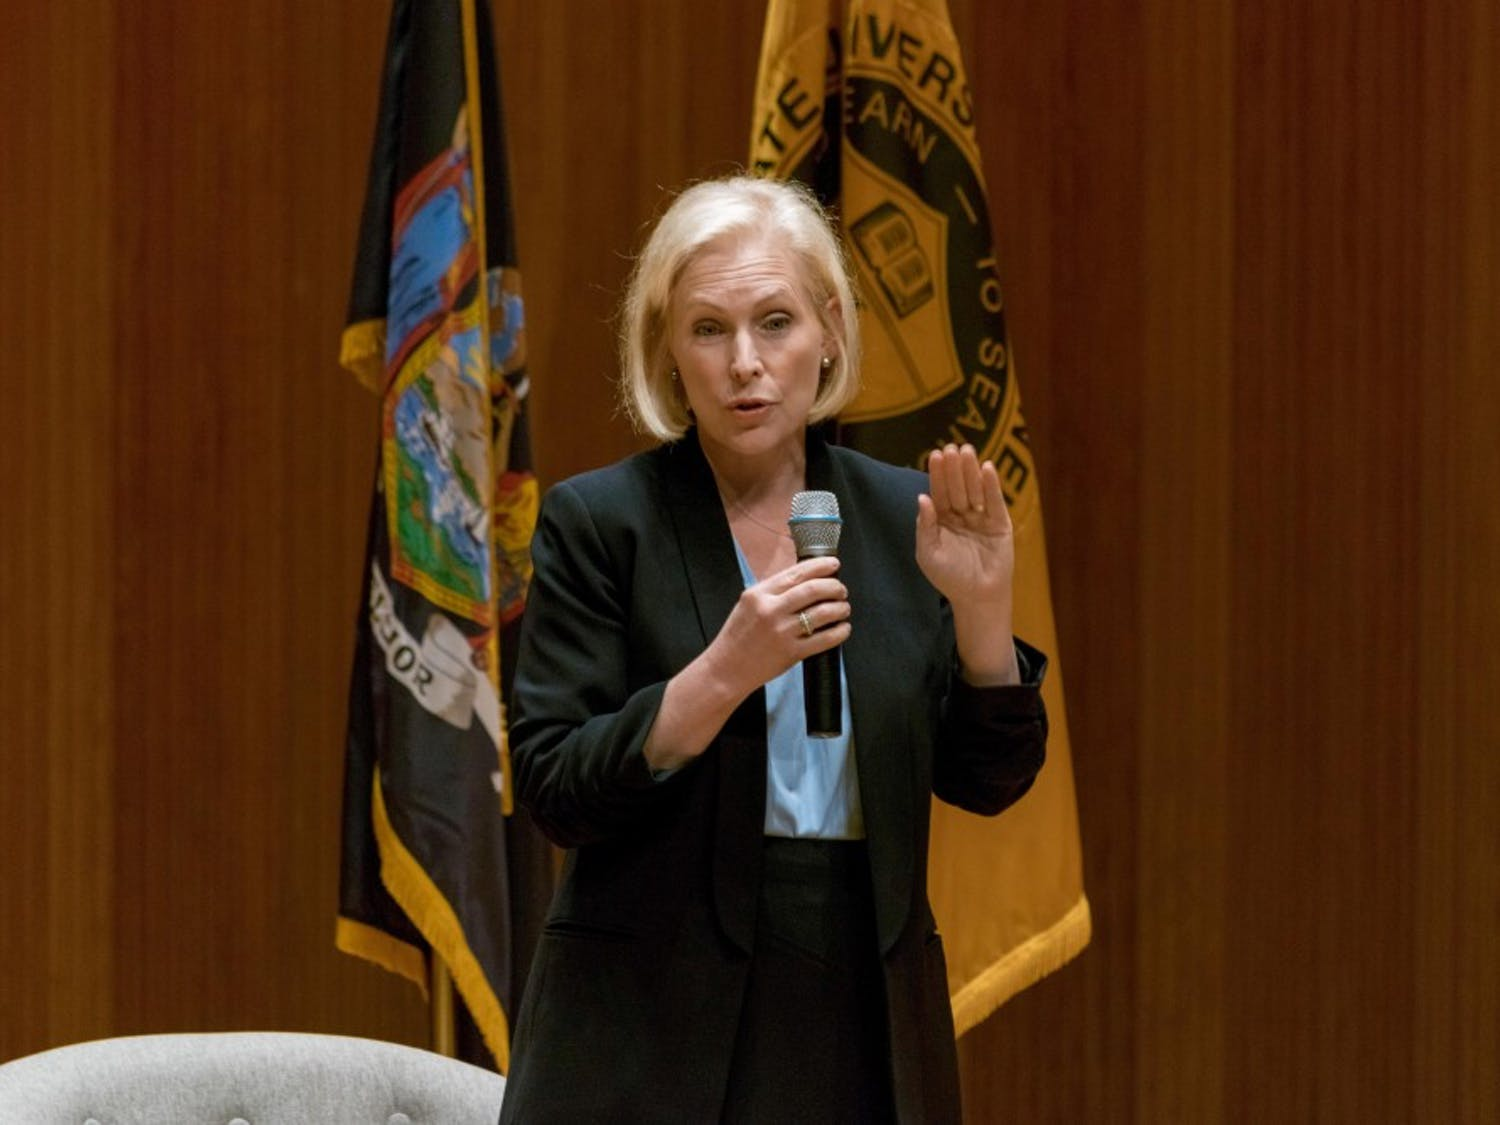 Senator Kirsten Gillibrand spoke to residents in a town hall discussion on Friday. Gillibrand answered questions about healthcare, public transit and selective service.